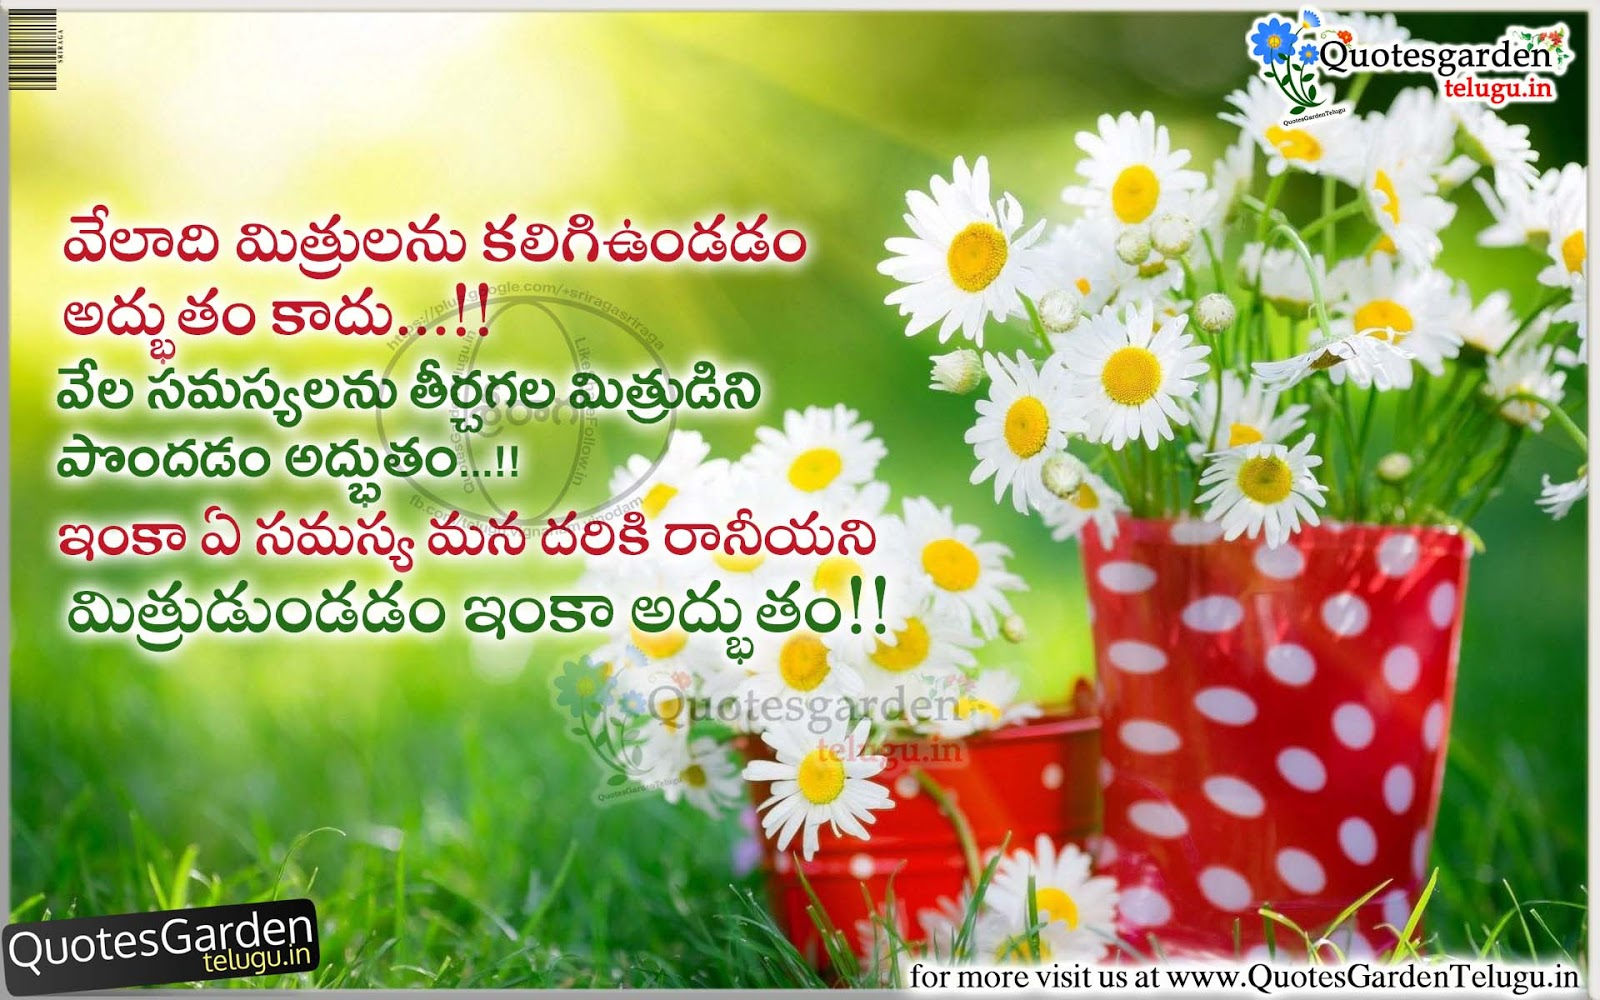 Nice Quotes About Friendship Collection Of All Time Best Friendship Quotes In Telugu Forever